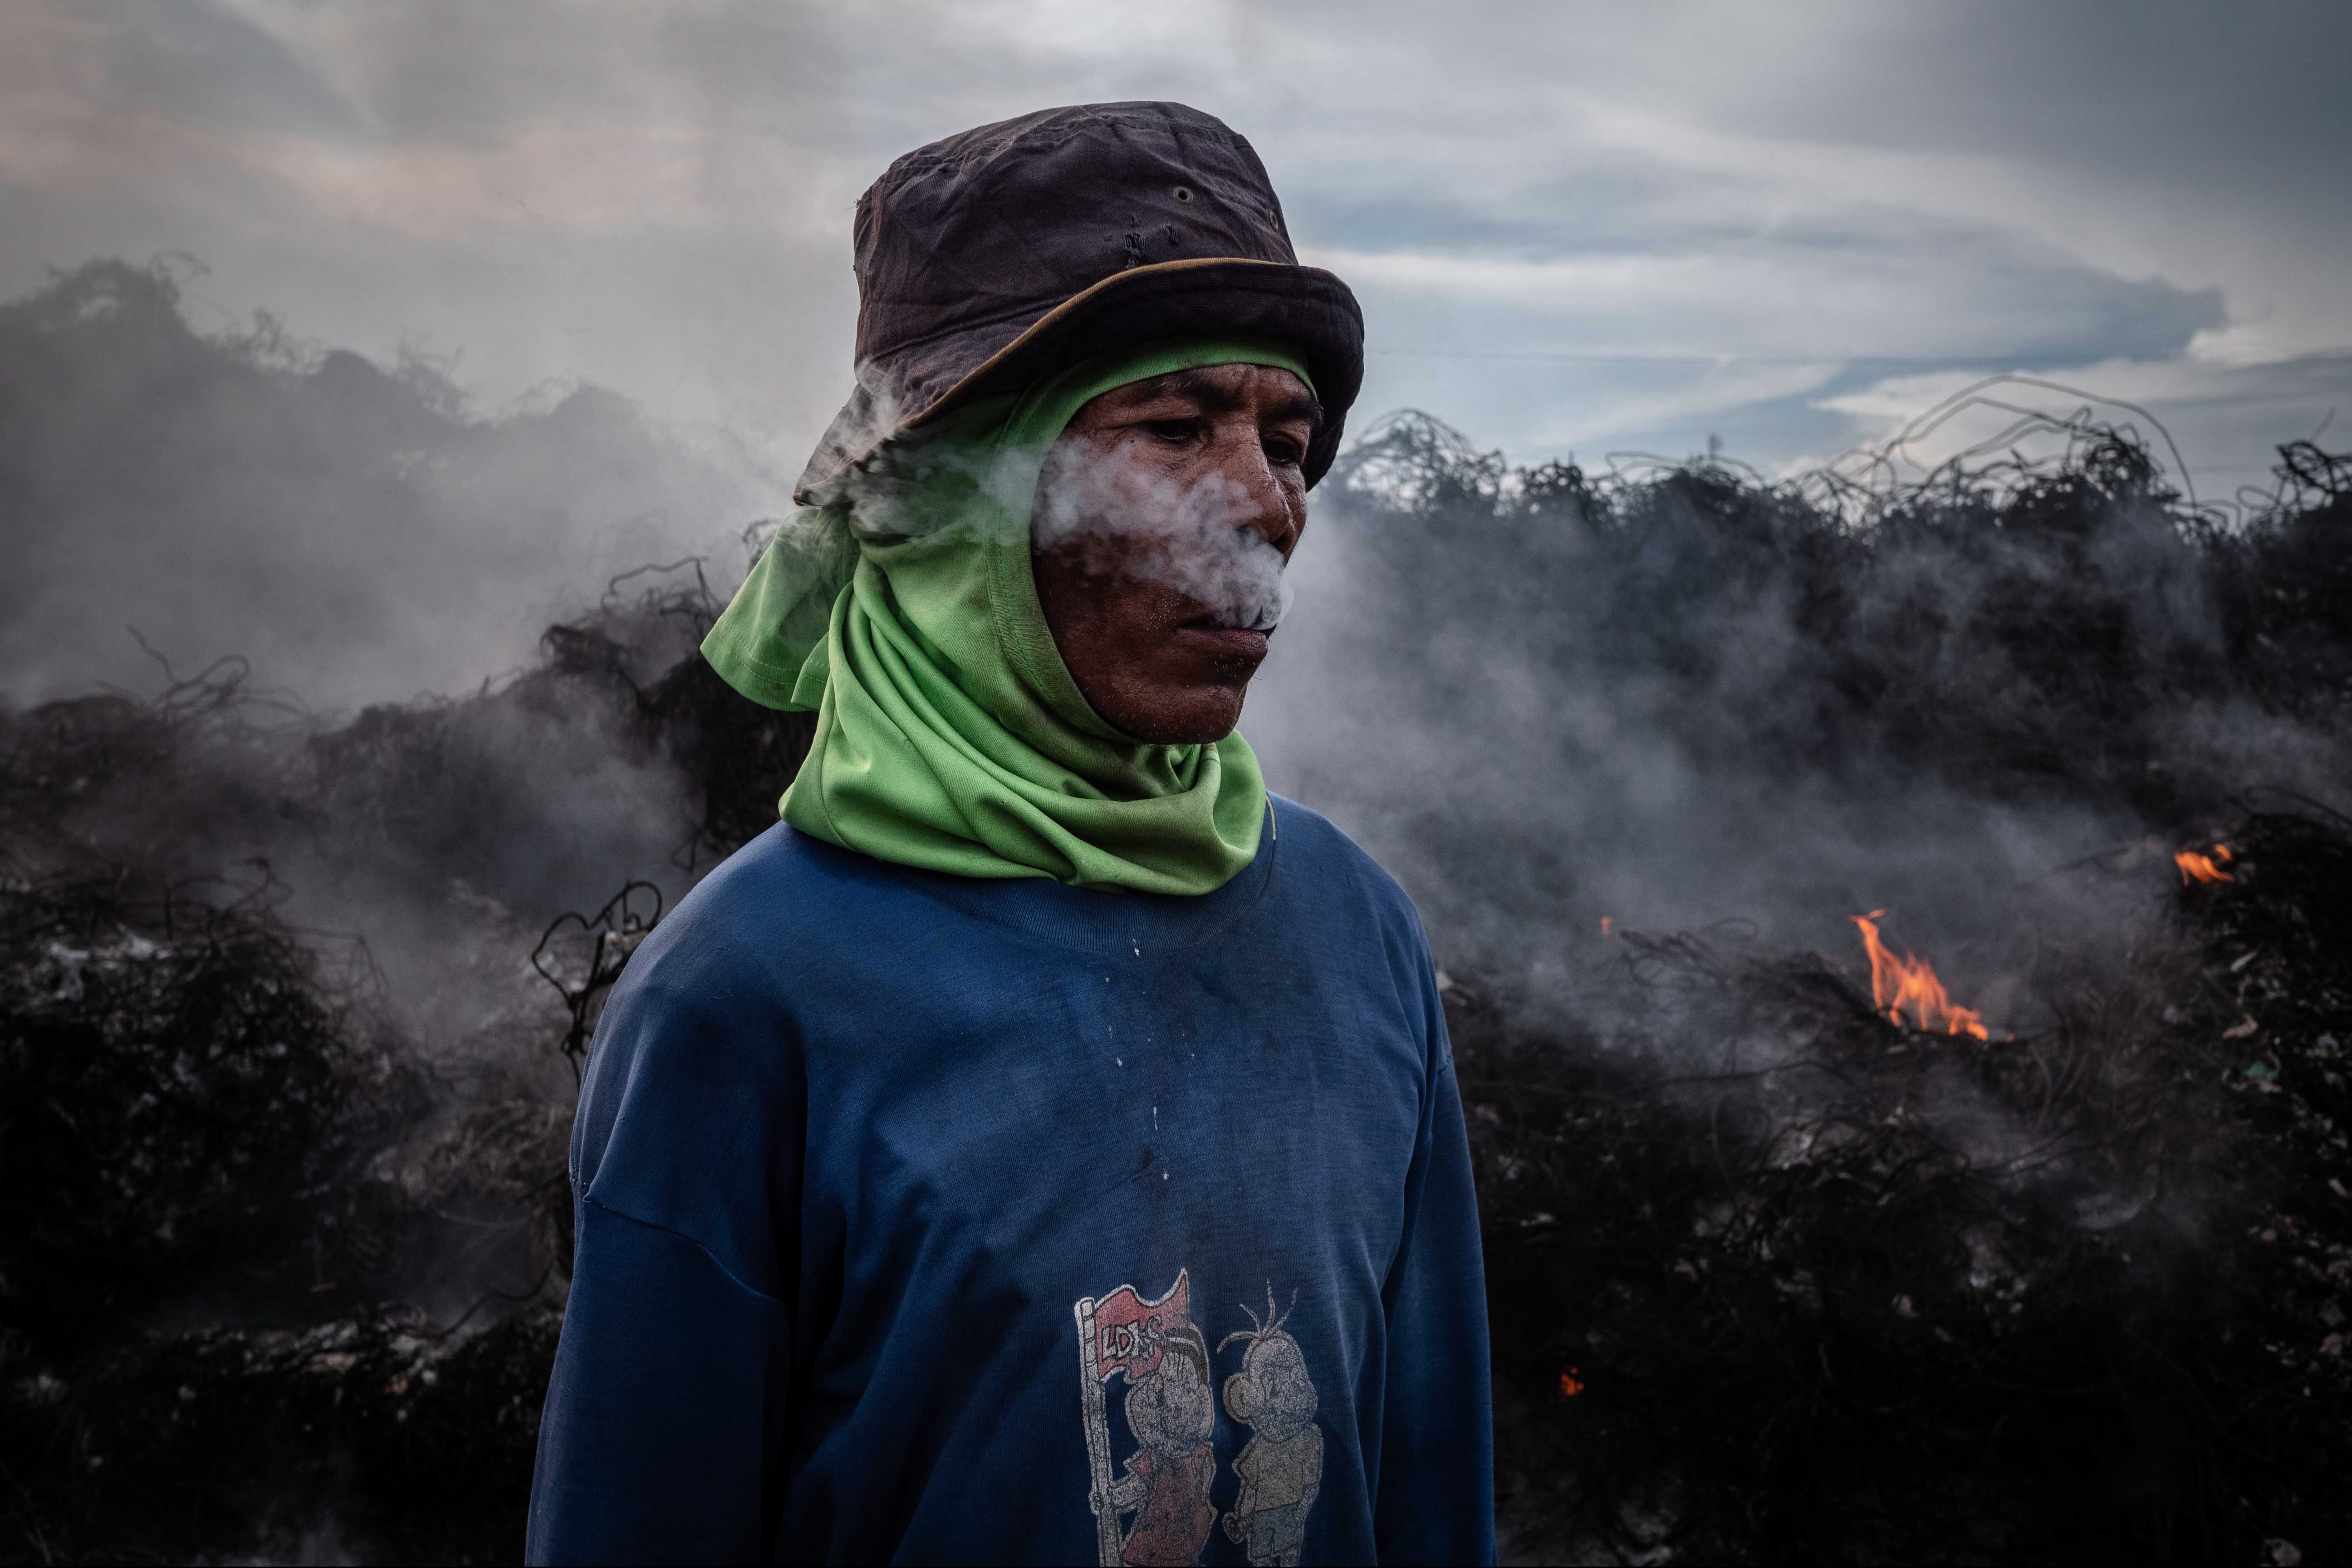 4 December 2018: Burning plastic that cannot be recycled at import dumps such as this one in Mojokerto, East Java, Indonesia, releases millions of tonnes of greenhouse gases into the atmosphere every year. (Photograph by Ulet Ifansasti/Getty Images)